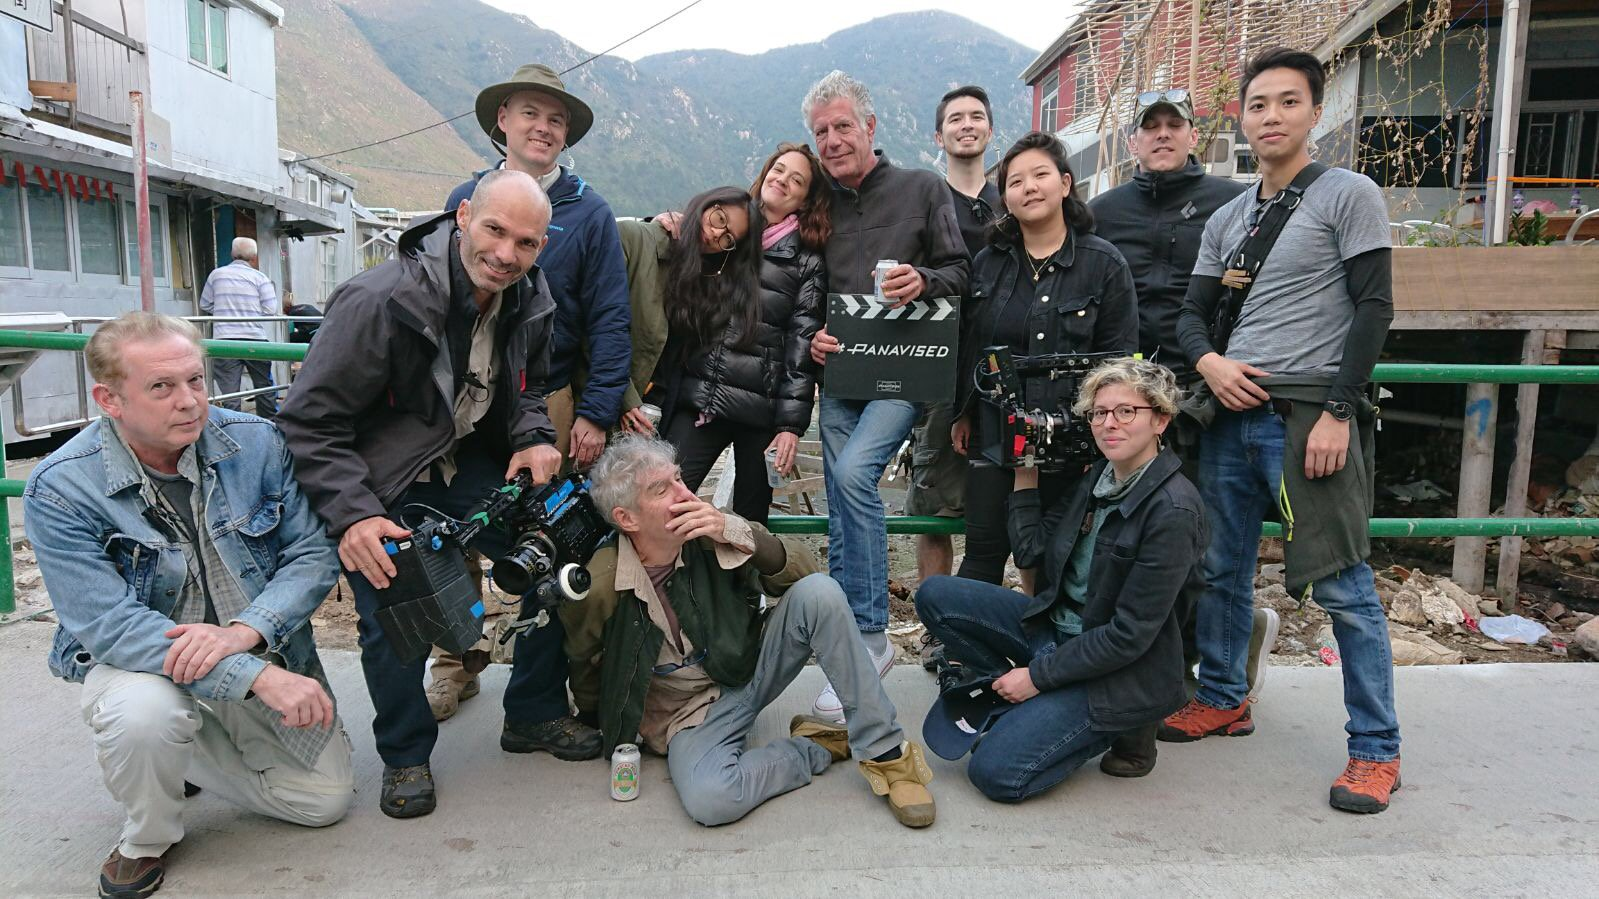 Crew photo from this Sunday's epic HONG KONG @PartsUnknownCNN Directed by @AsiaArgento Director of Photography @dukefeng52 (Christopher Doyle) https://t.co/iV5mq23o0w